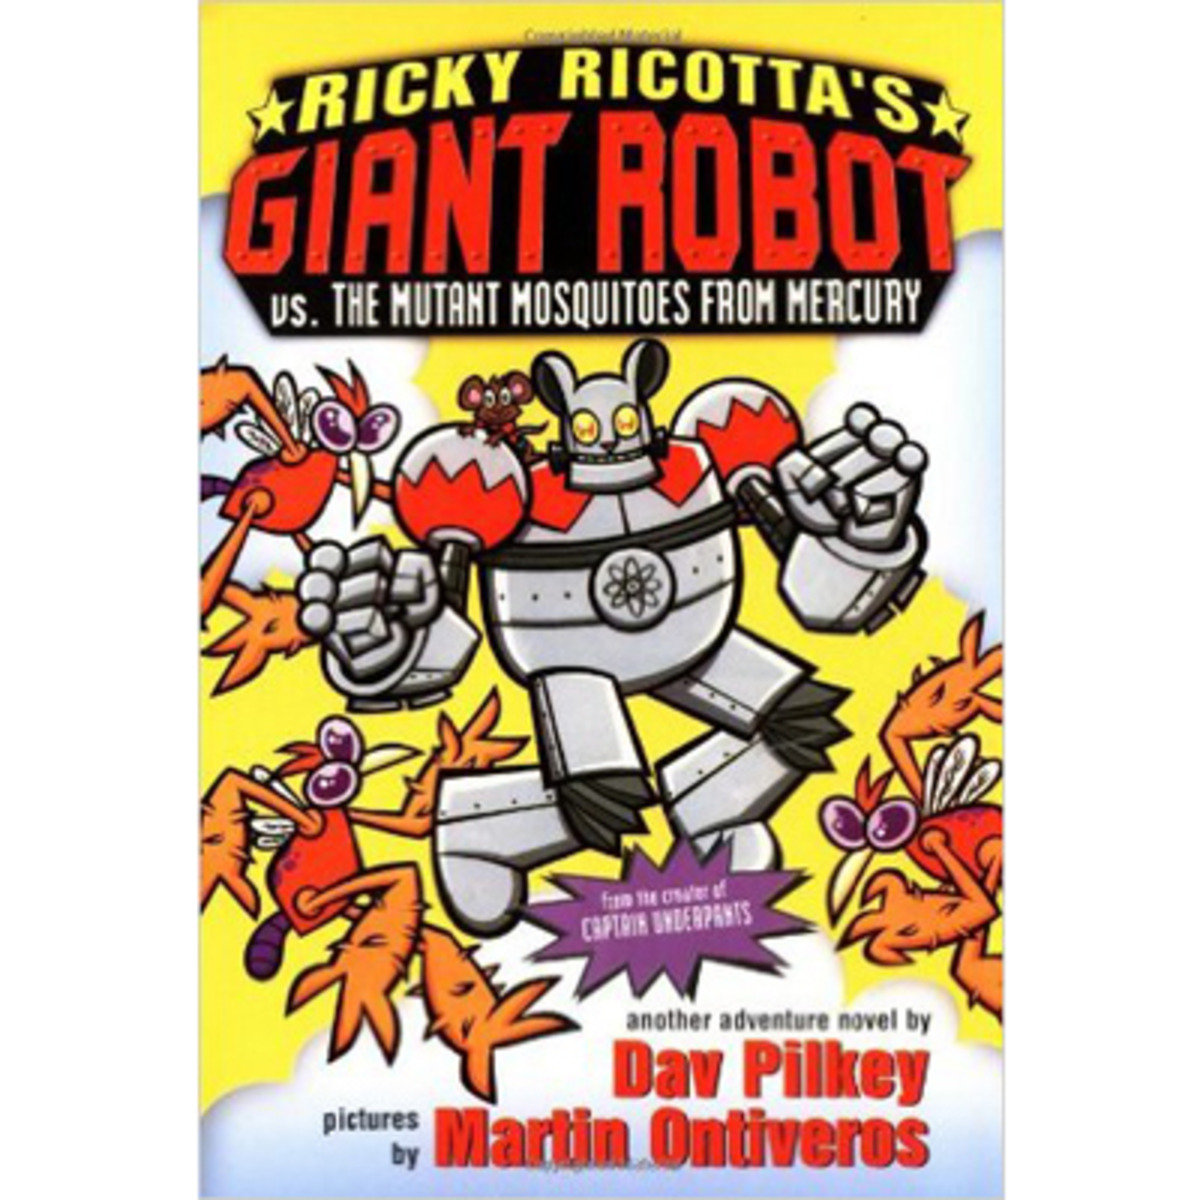 Ricky Ricotta's Giant Robot Vs.the Mutant Mosquitoes from Mercury : The Second Robot Adventure Novel